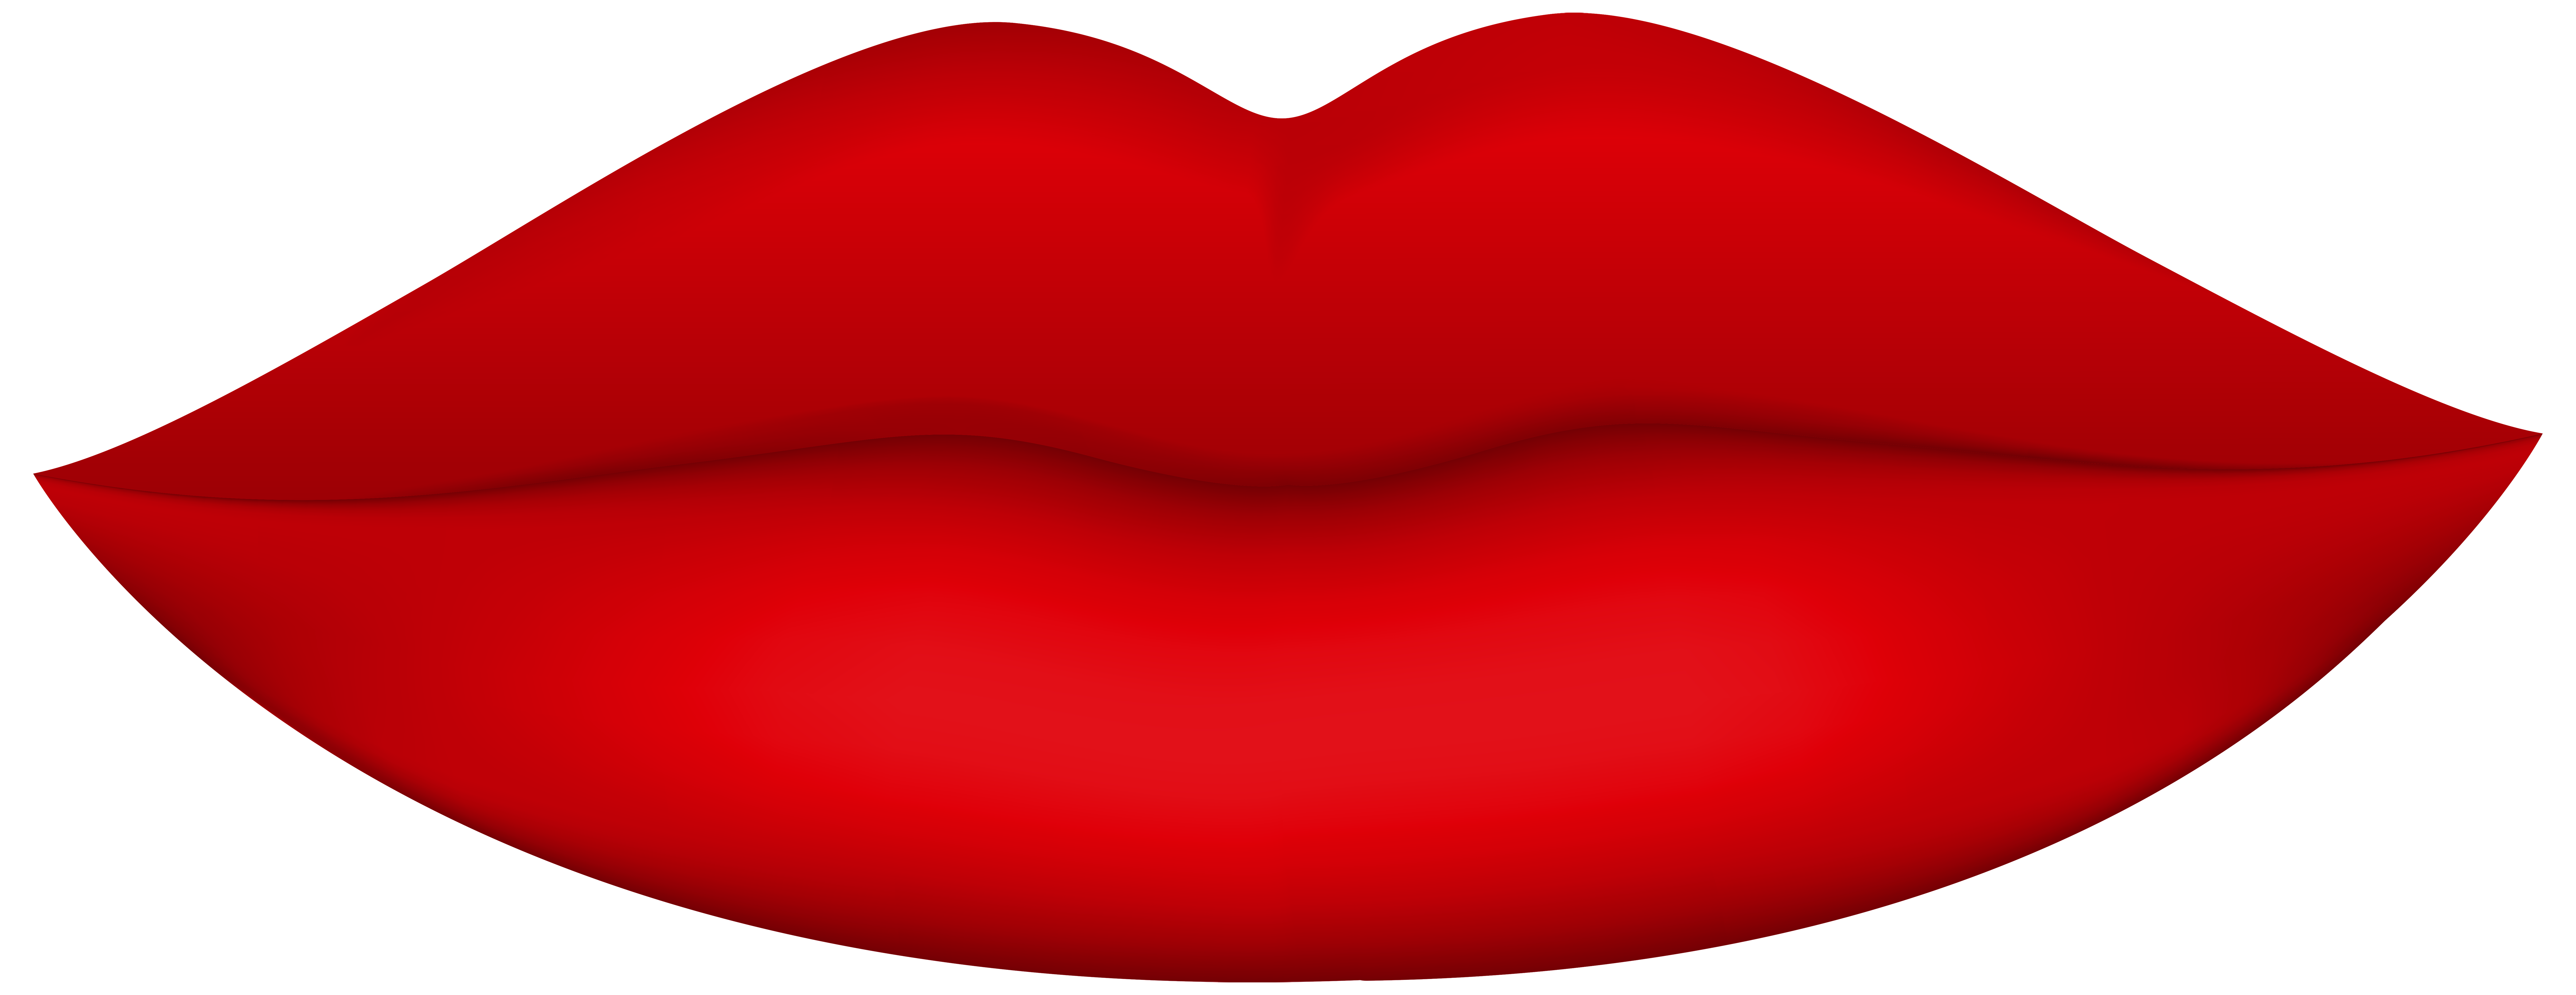 Red Lips PNG Clip Art-Red Lips PNG Clip Art-2